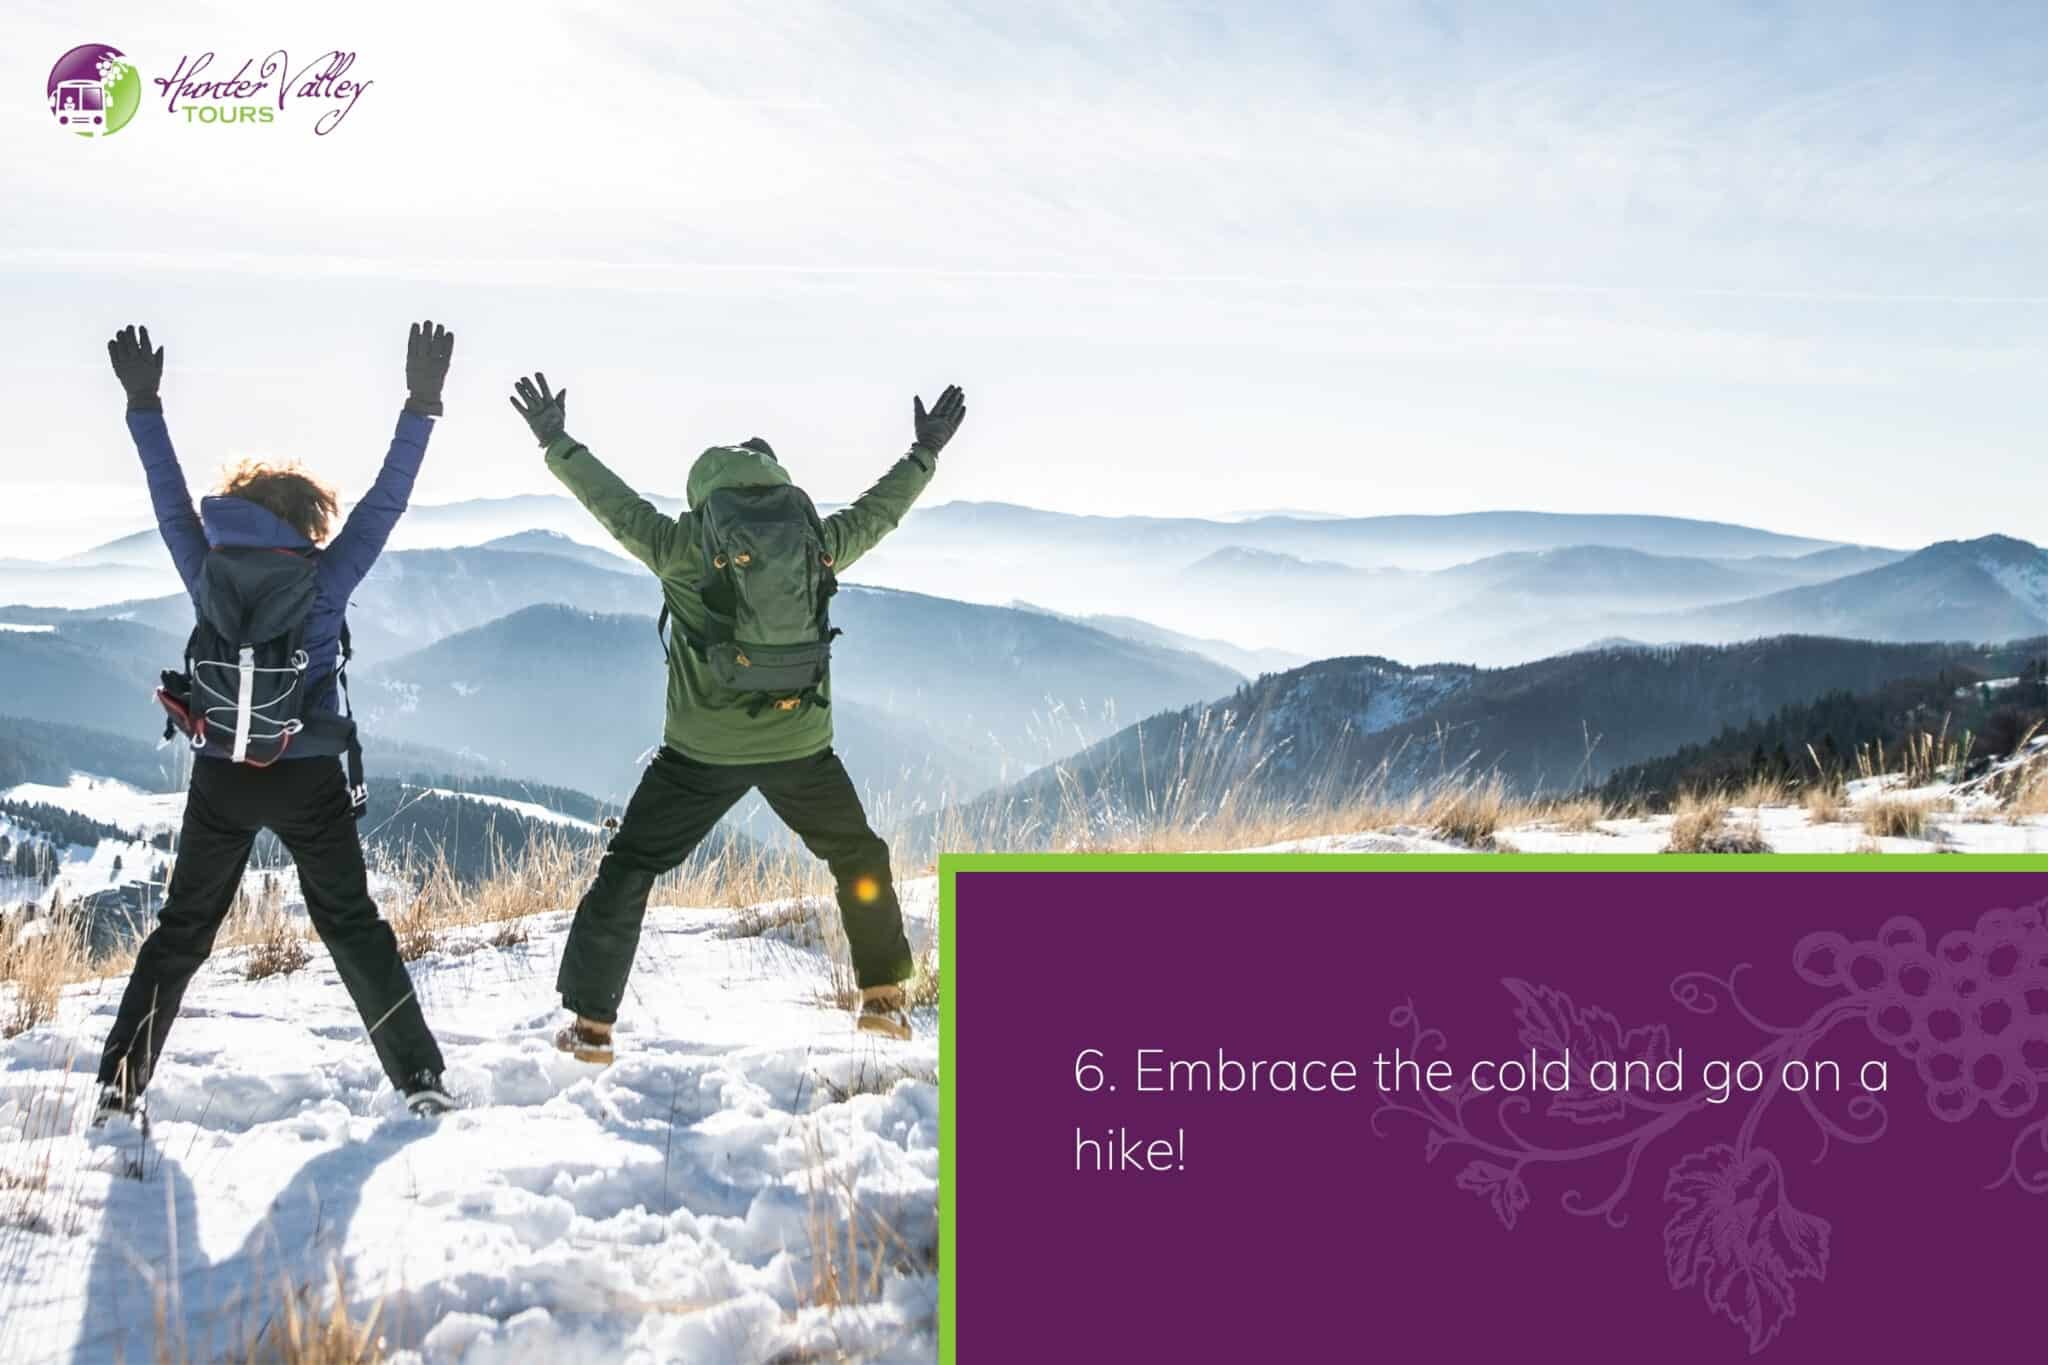 Embrace the cold and go on a hike!